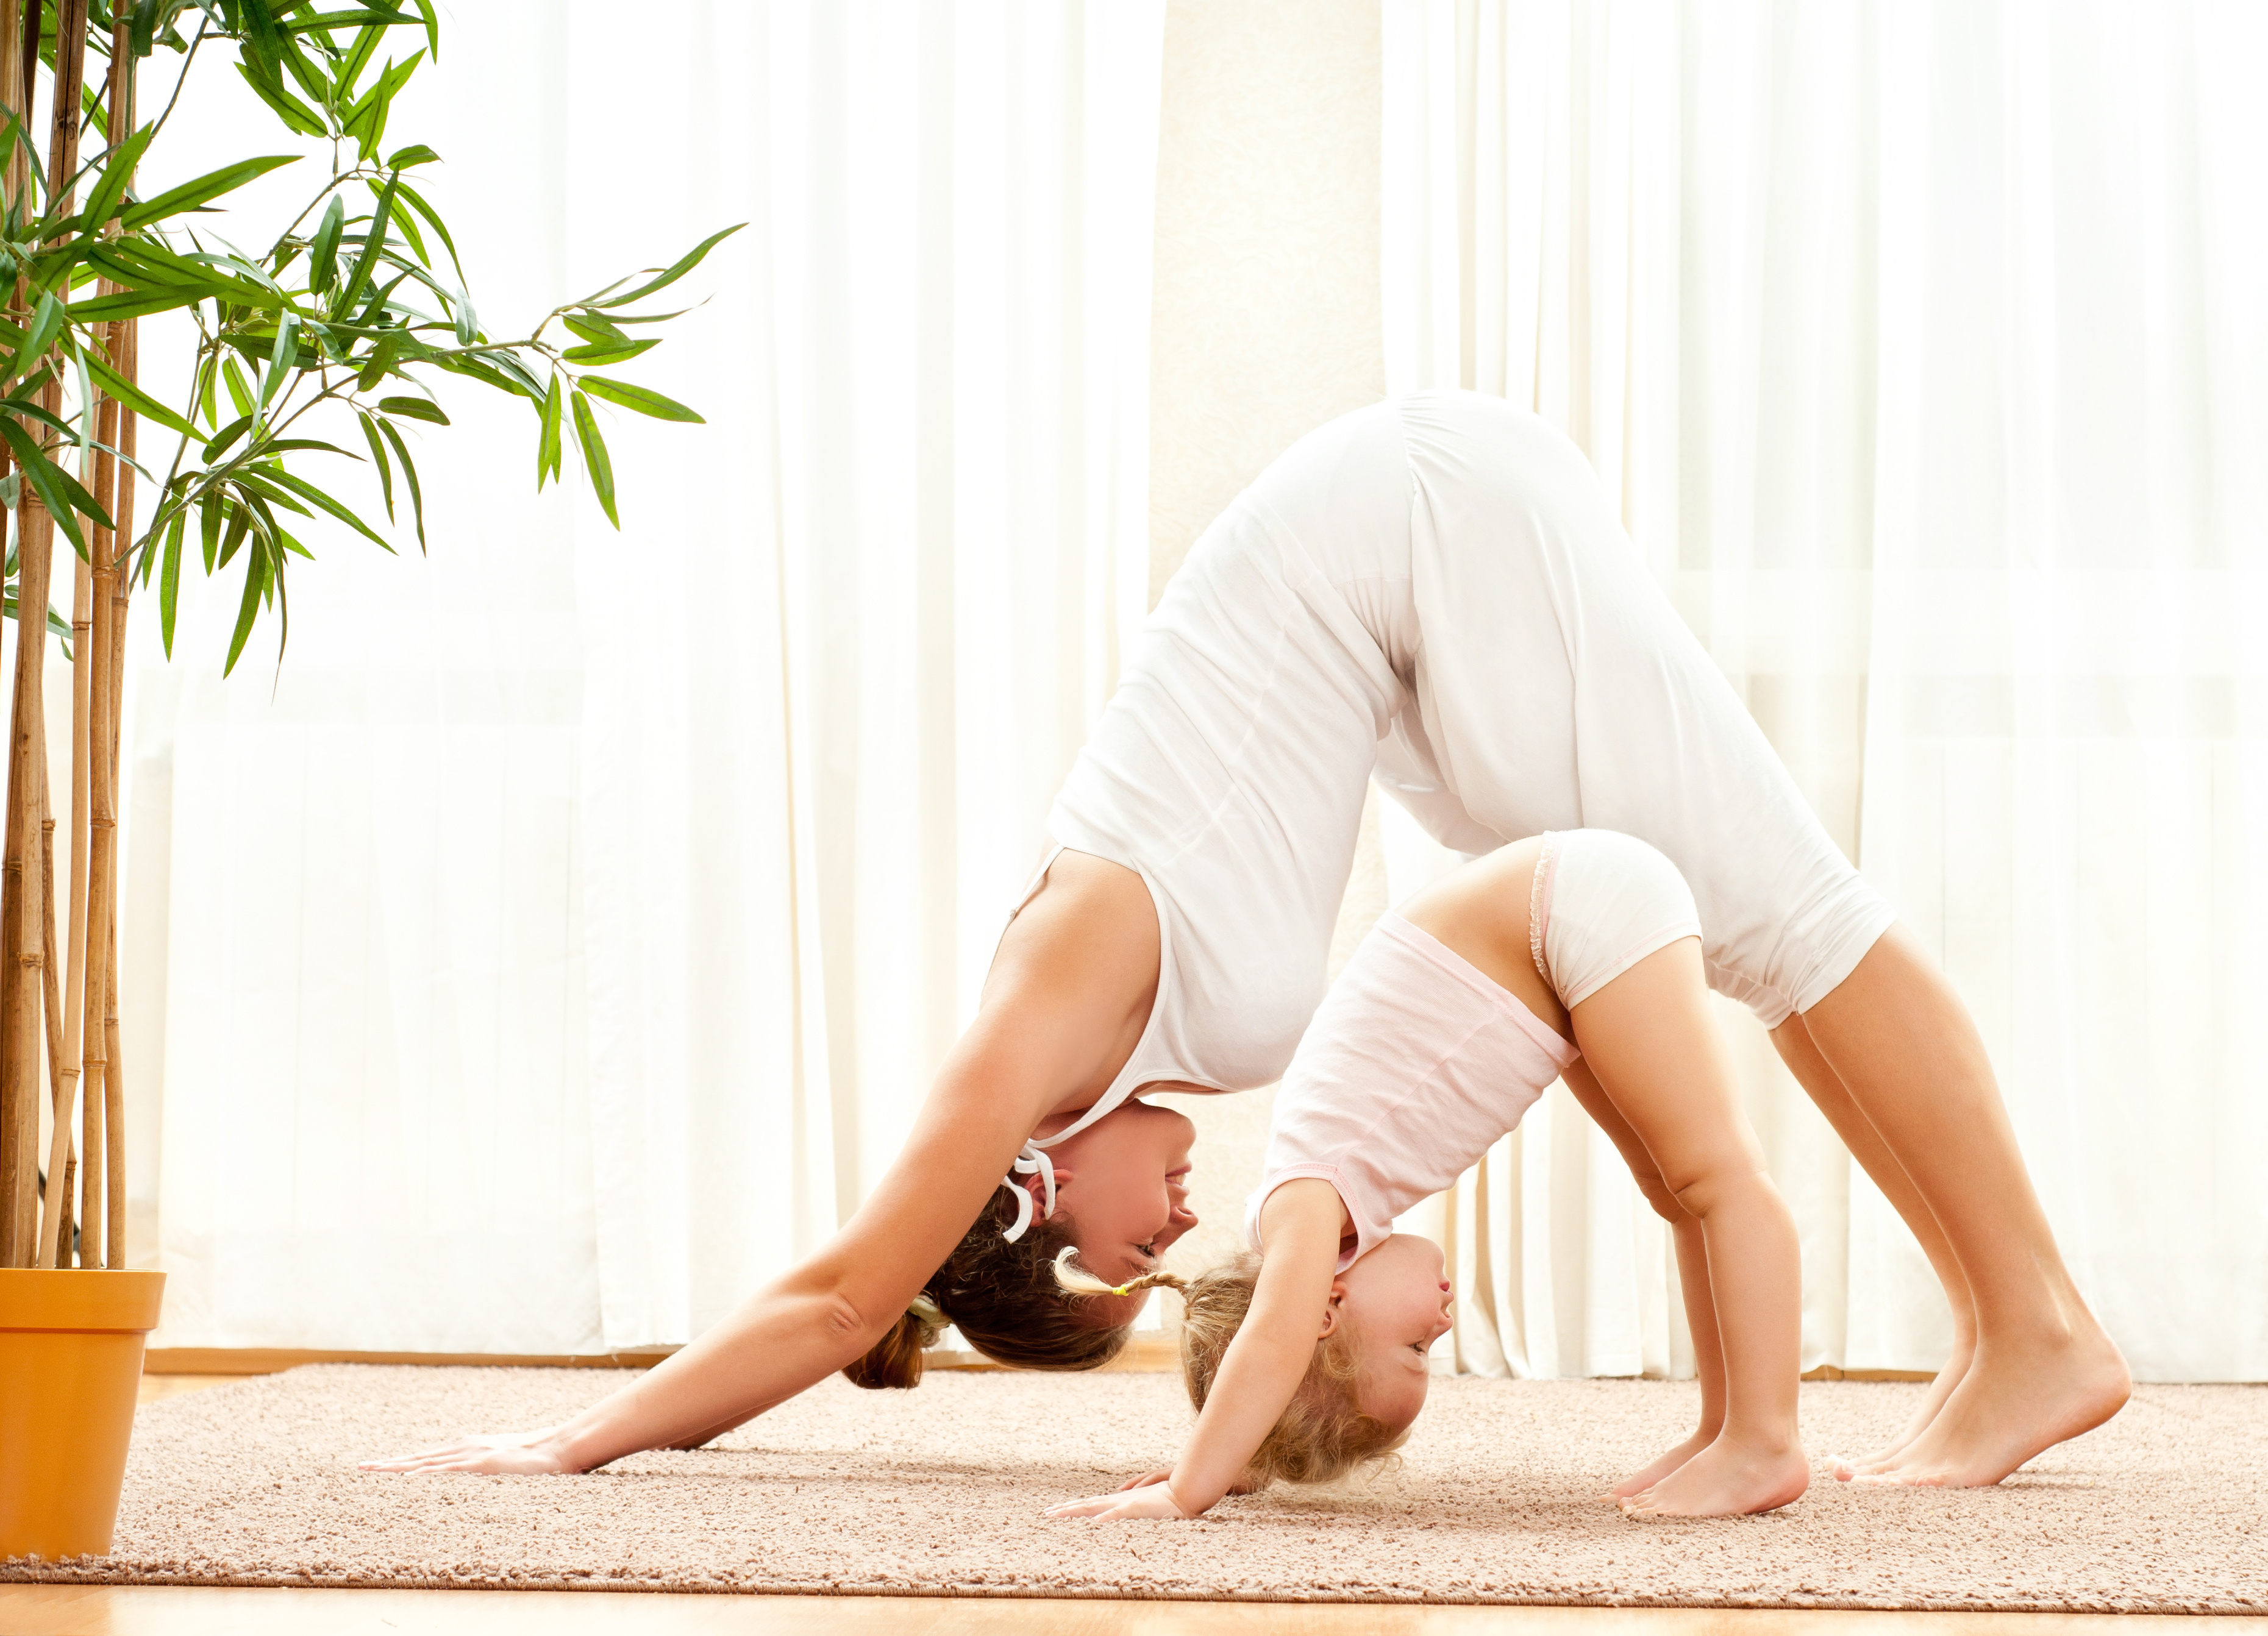 Yoga doesn't stop with you think about what it passes on to your family.